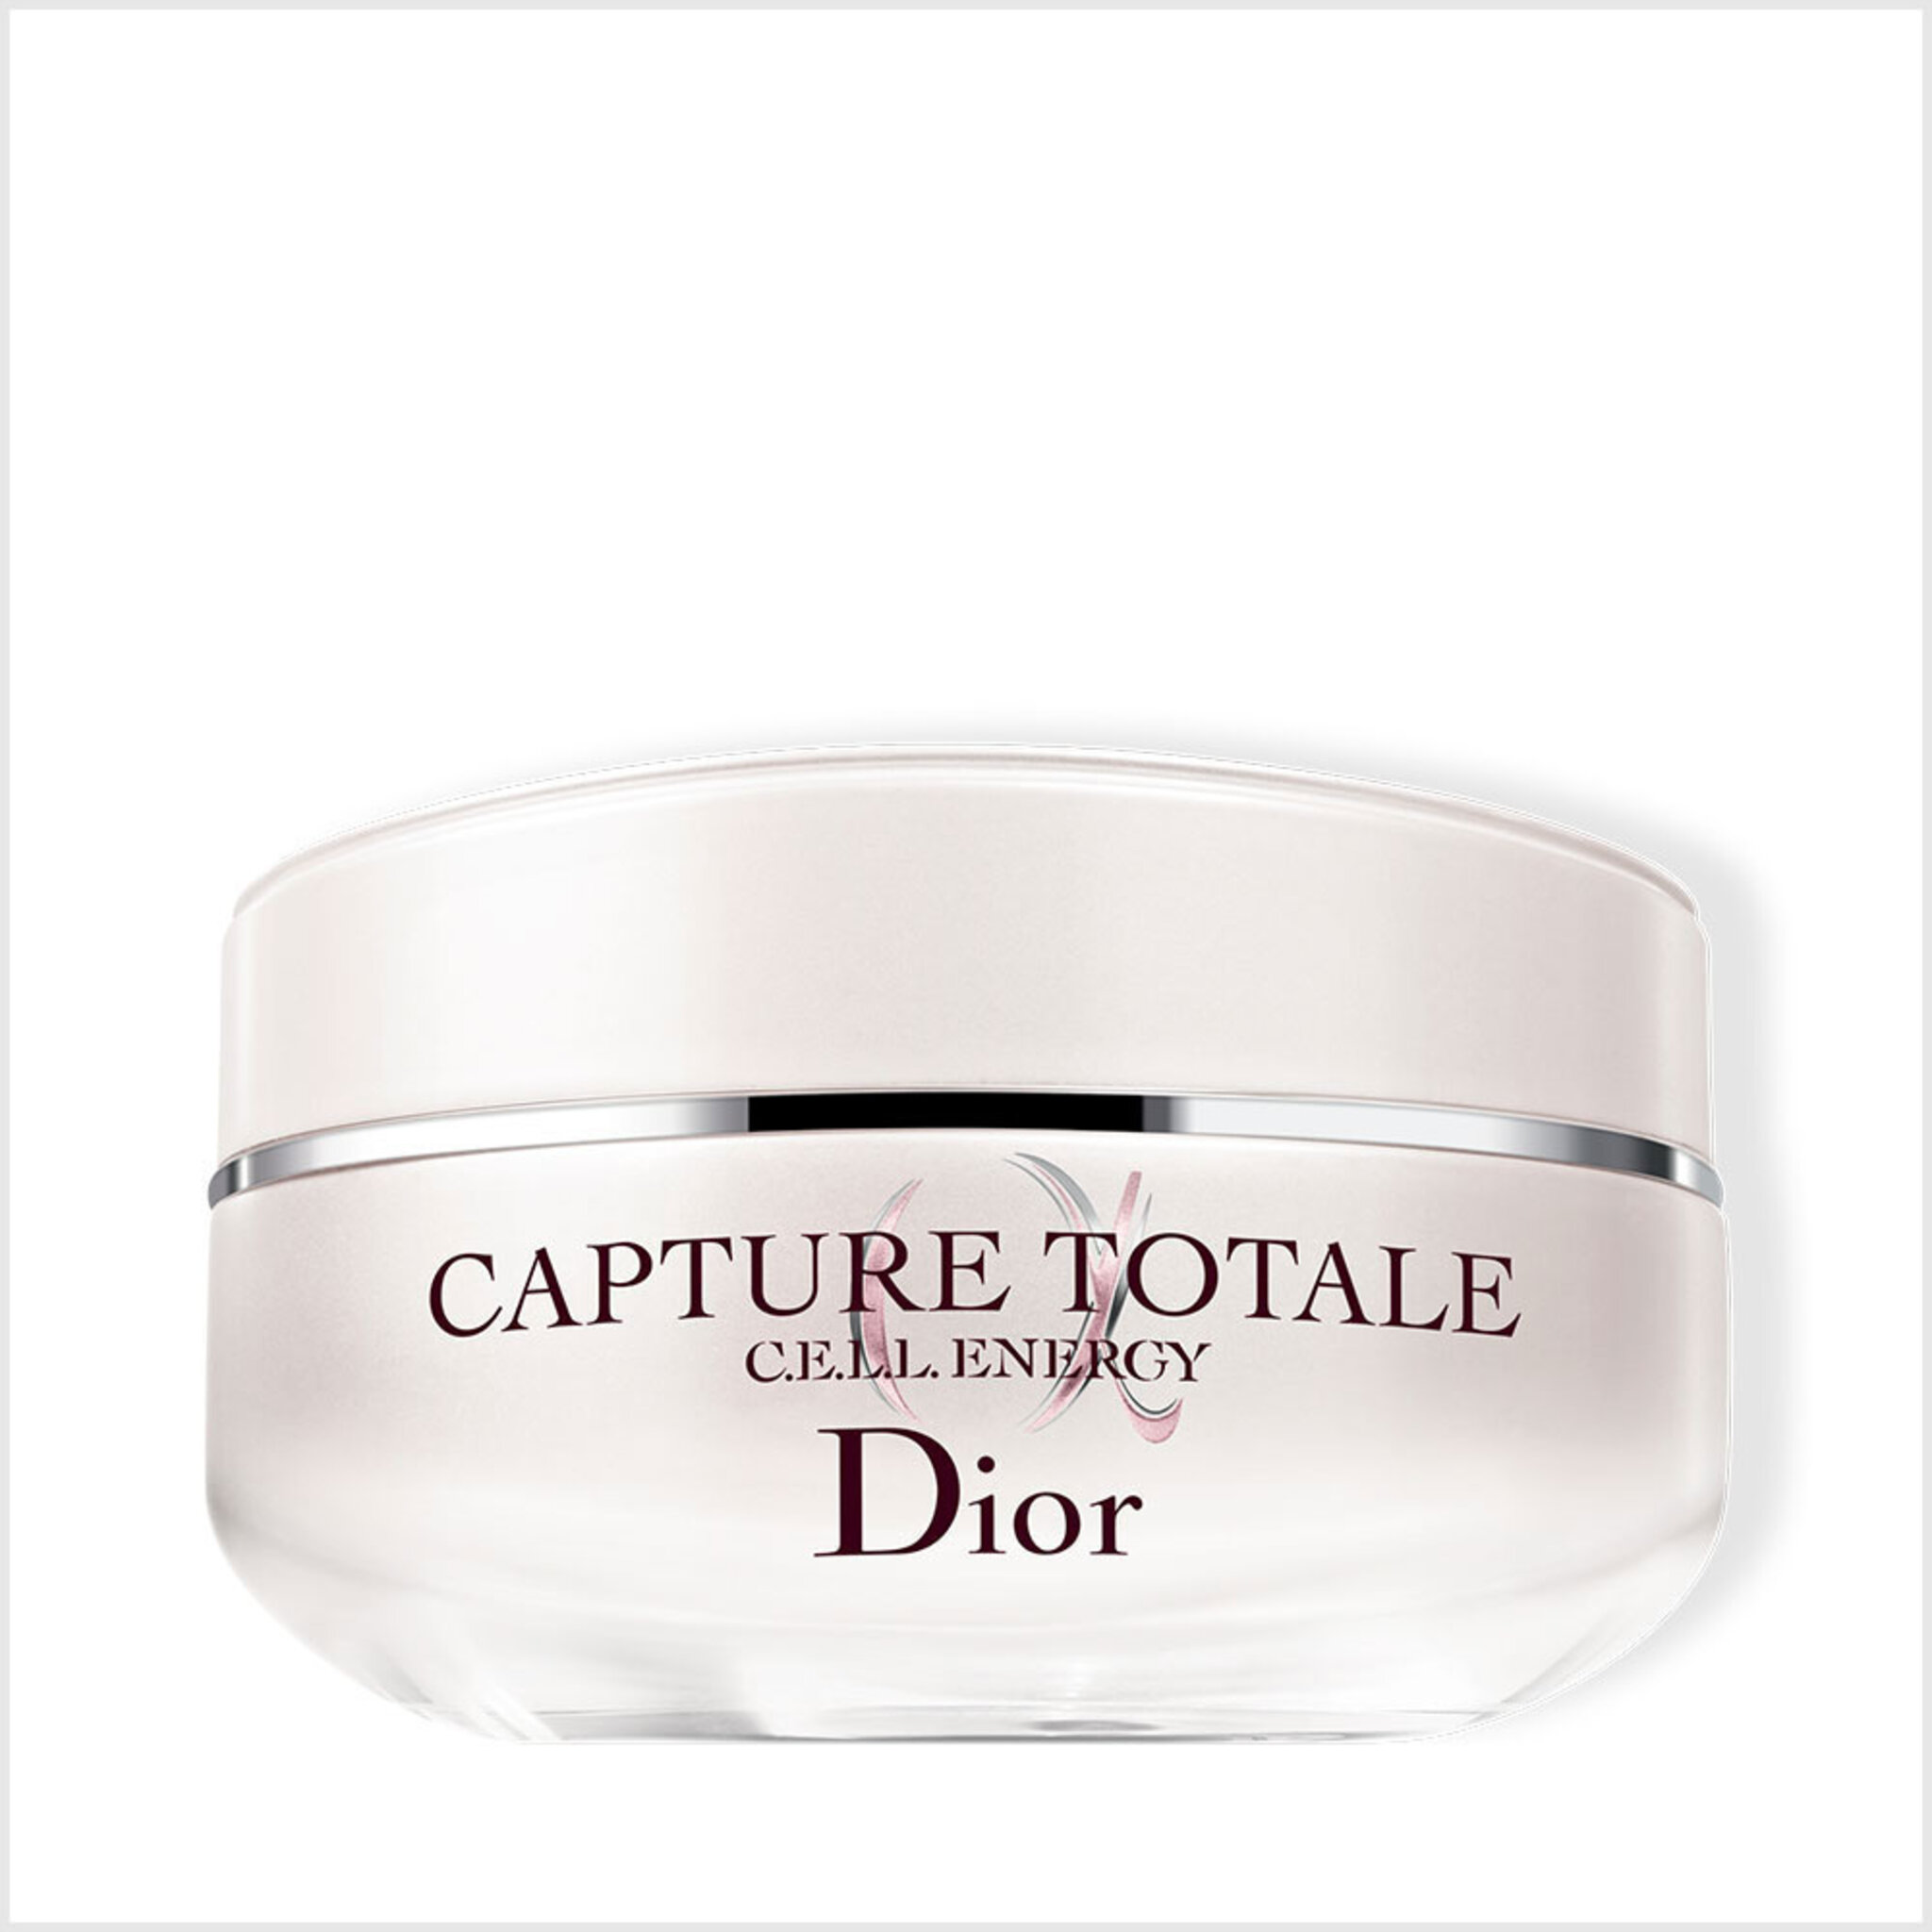 Capture Totale C.E.L.L. ENERGY - Firming & Wrinkle-Correcting Creme, 50 ML